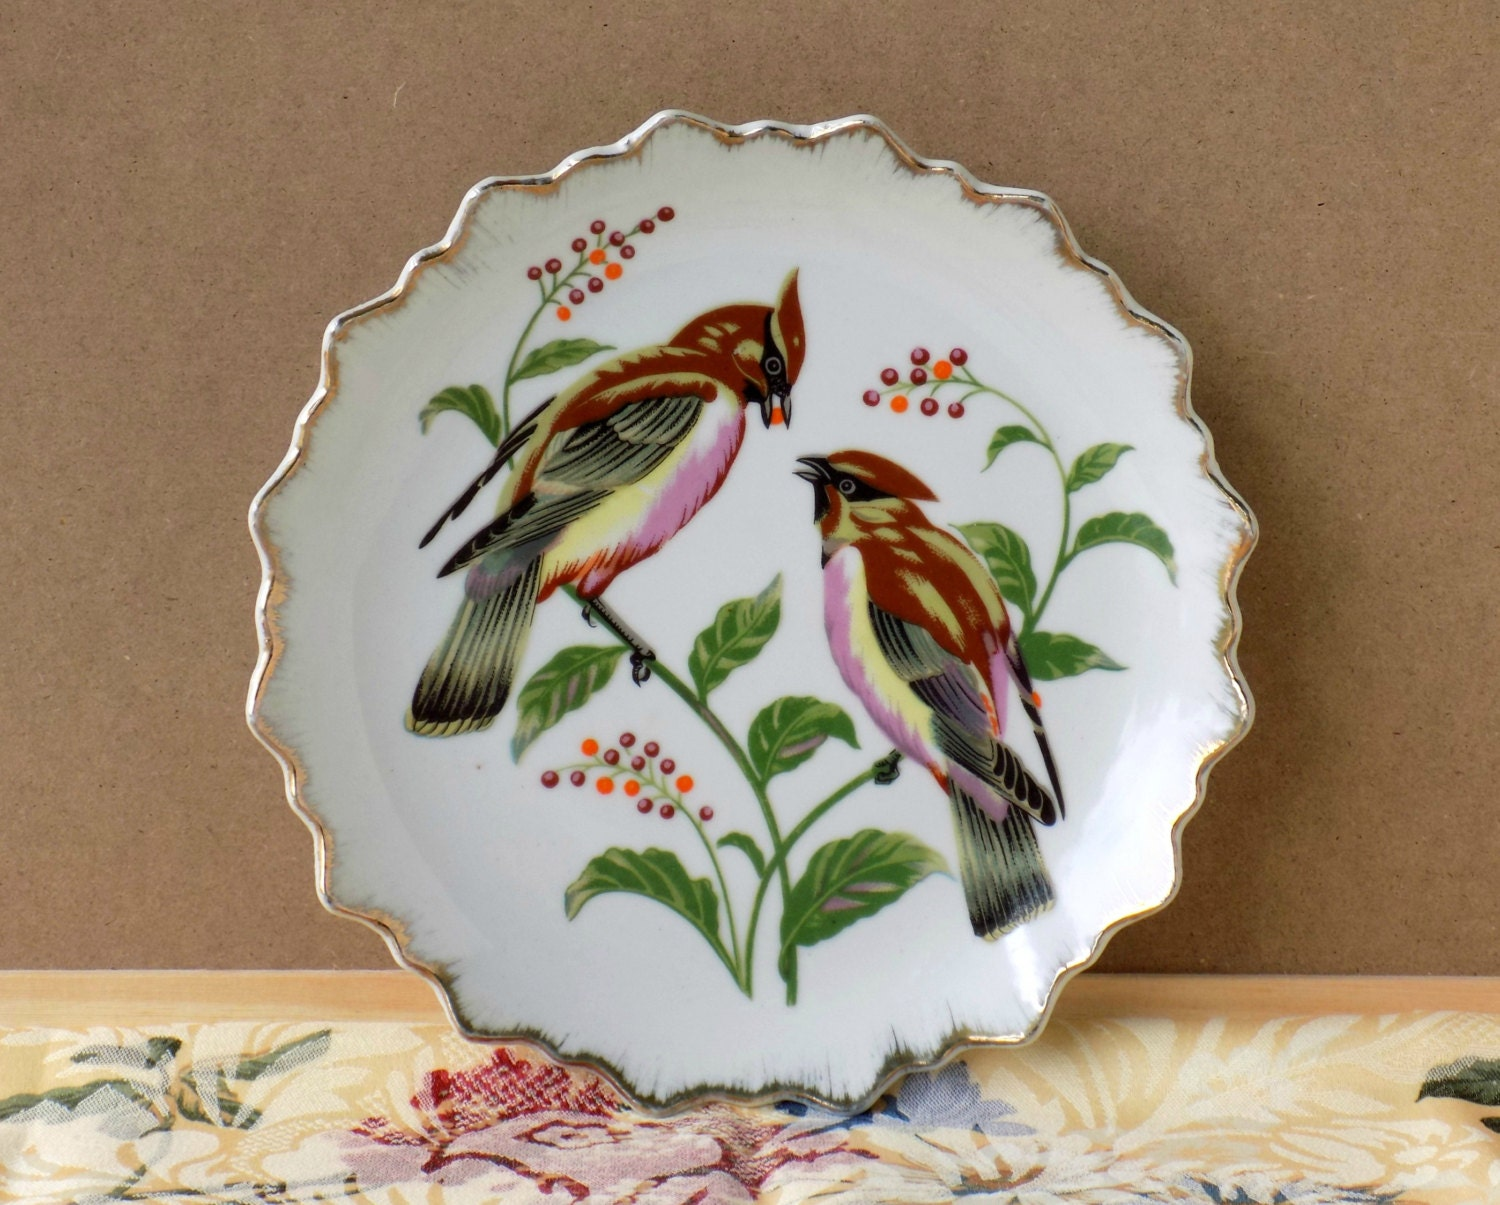 Vintage Bird Plate. Wall Decor. Decorative Accent. Home